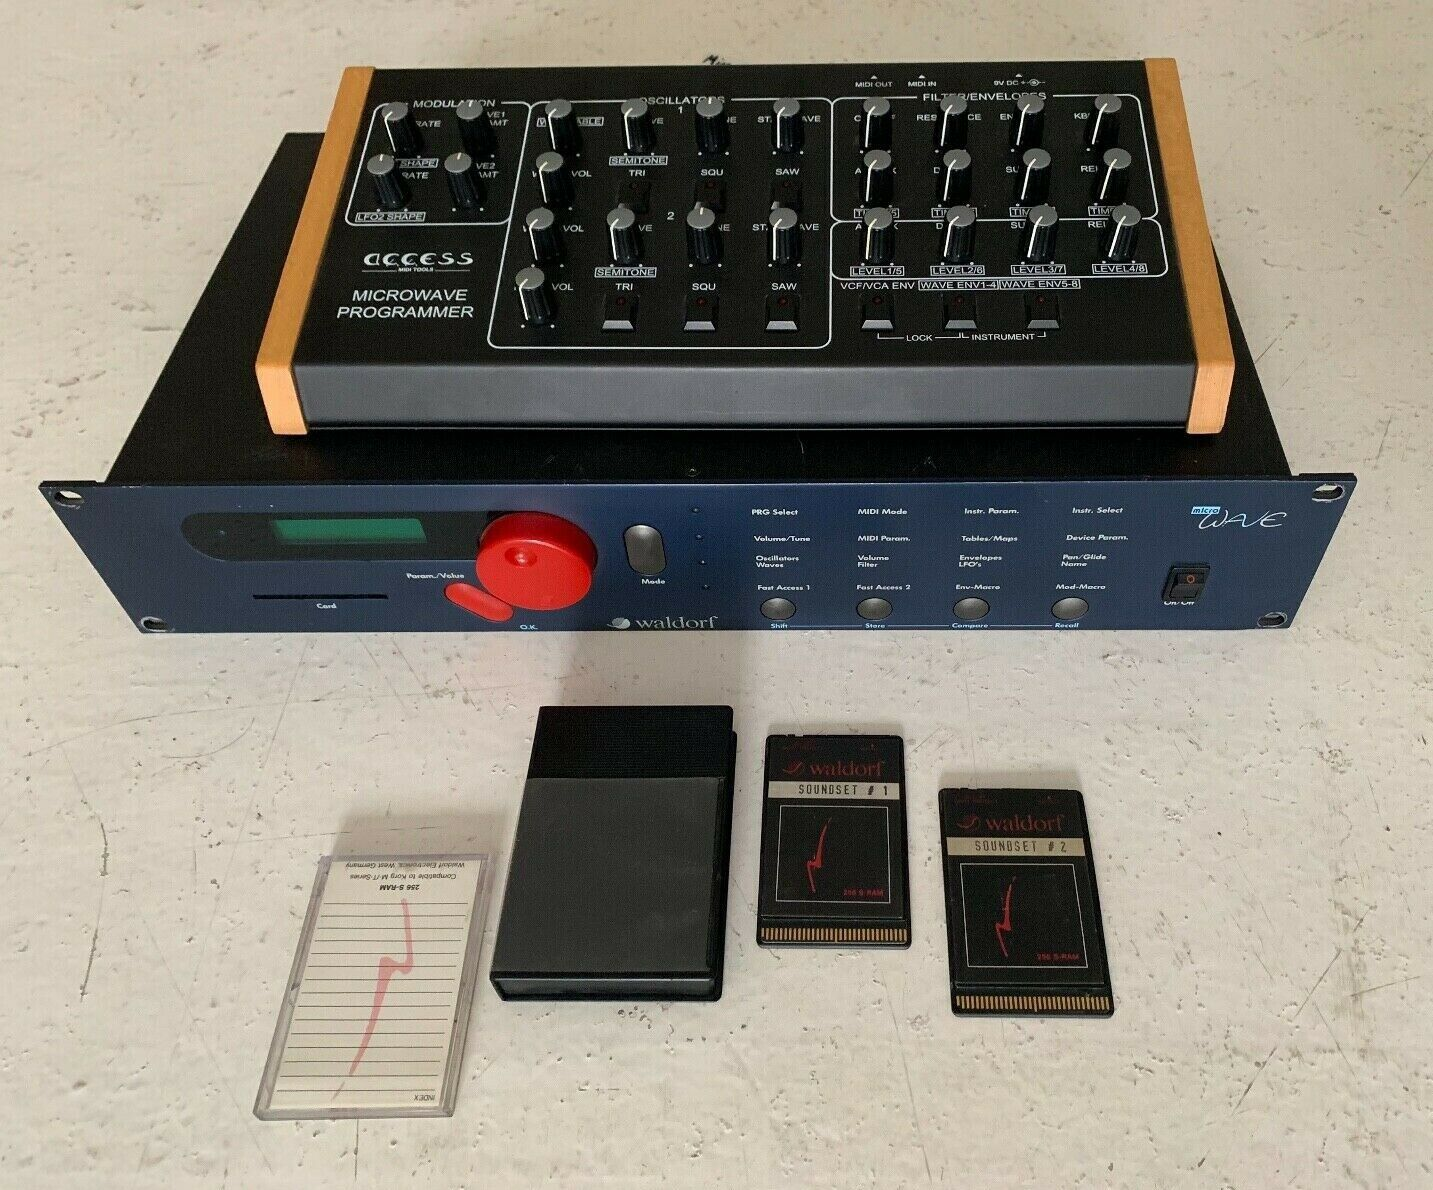 Access Instr matrixsynth: waldorf microwave 1 synth (rev a, 2.0 os) +